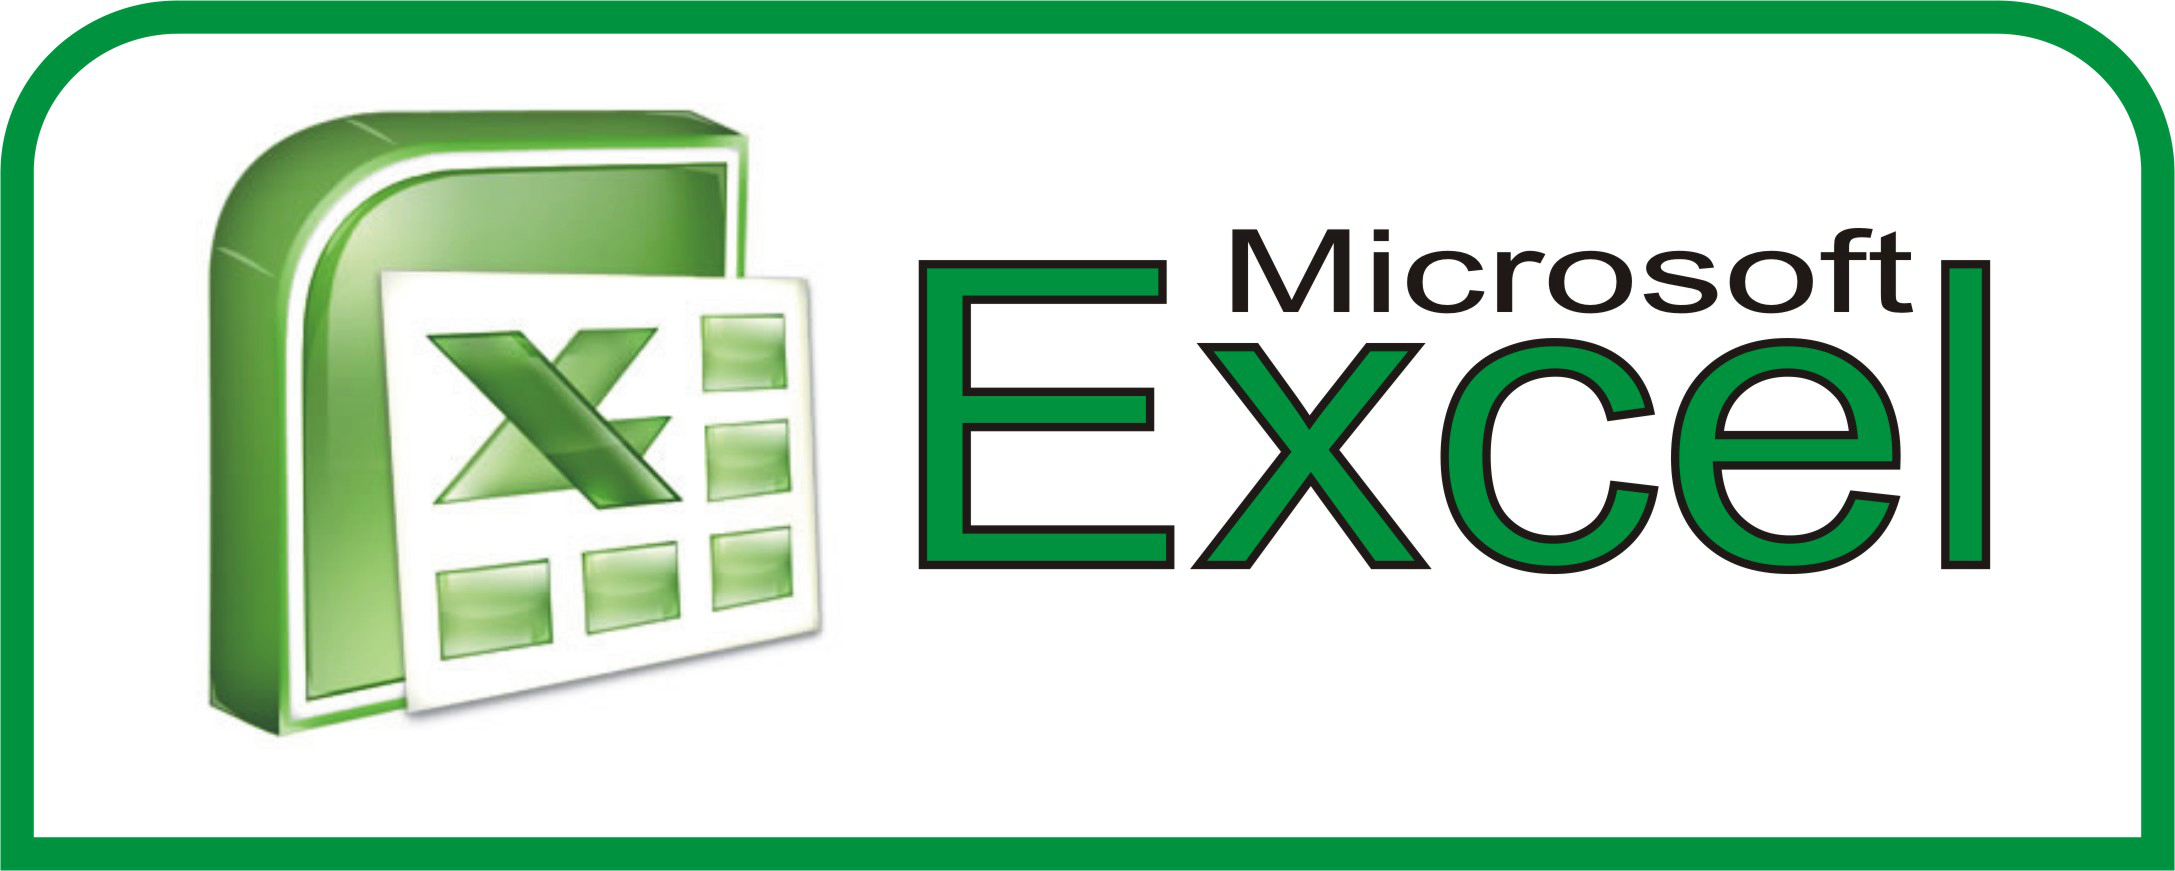 Ediblewildsus  Personable  Excel Shortcuts You Probably Didnt Know About  Techdissected With Handsome Cell Styles In Excel Besides Excel Count If Not Blank Furthermore E Excel International With Astounding Microsoft Excel Macros Also Excel Data Analysis Toolpak Mac In Addition What Is Goal Seek In Excel And How To Use Pivot Table In Excel  As Well As What Is Conditional Formatting In Excel Additionally Excel Workday From Techdissectedcom With Ediblewildsus  Handsome  Excel Shortcuts You Probably Didnt Know About  Techdissected With Astounding Cell Styles In Excel Besides Excel Count If Not Blank Furthermore E Excel International And Personable Microsoft Excel Macros Also Excel Data Analysis Toolpak Mac In Addition What Is Goal Seek In Excel From Techdissectedcom